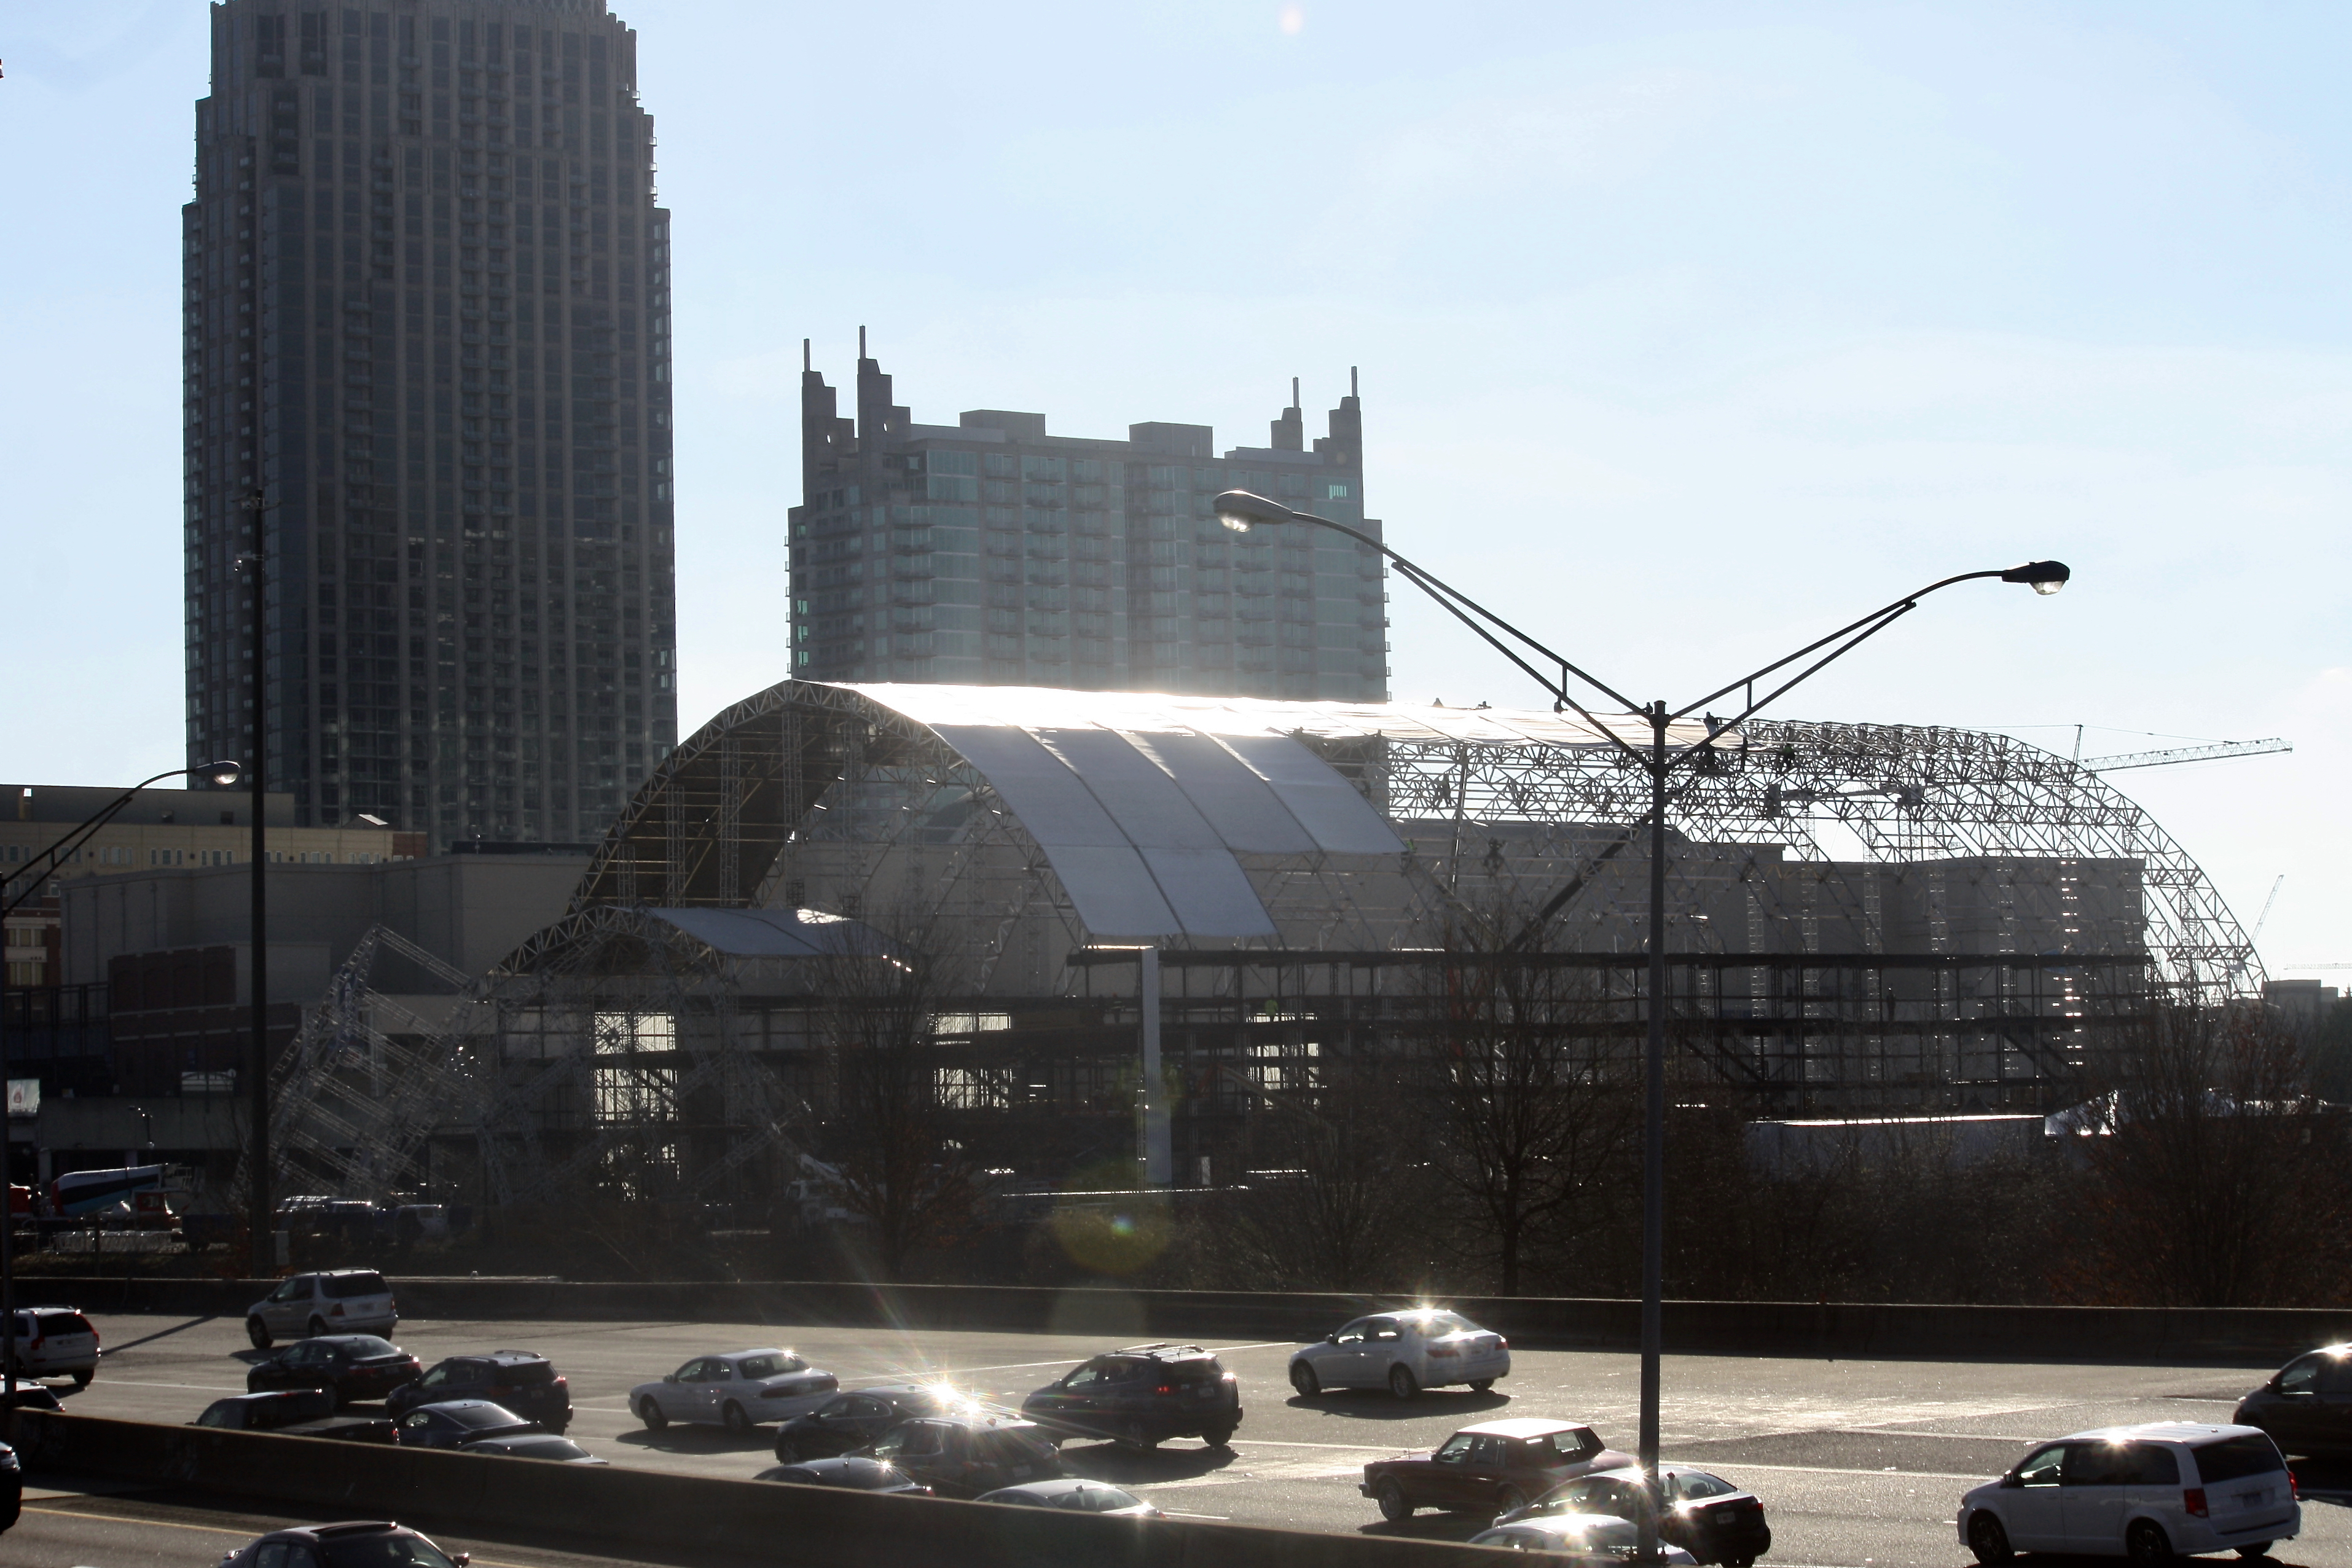 A photo of the 100-foot-tall, temporary venue being pieced together Tuesday, as seen from across the Connector in Midtown.